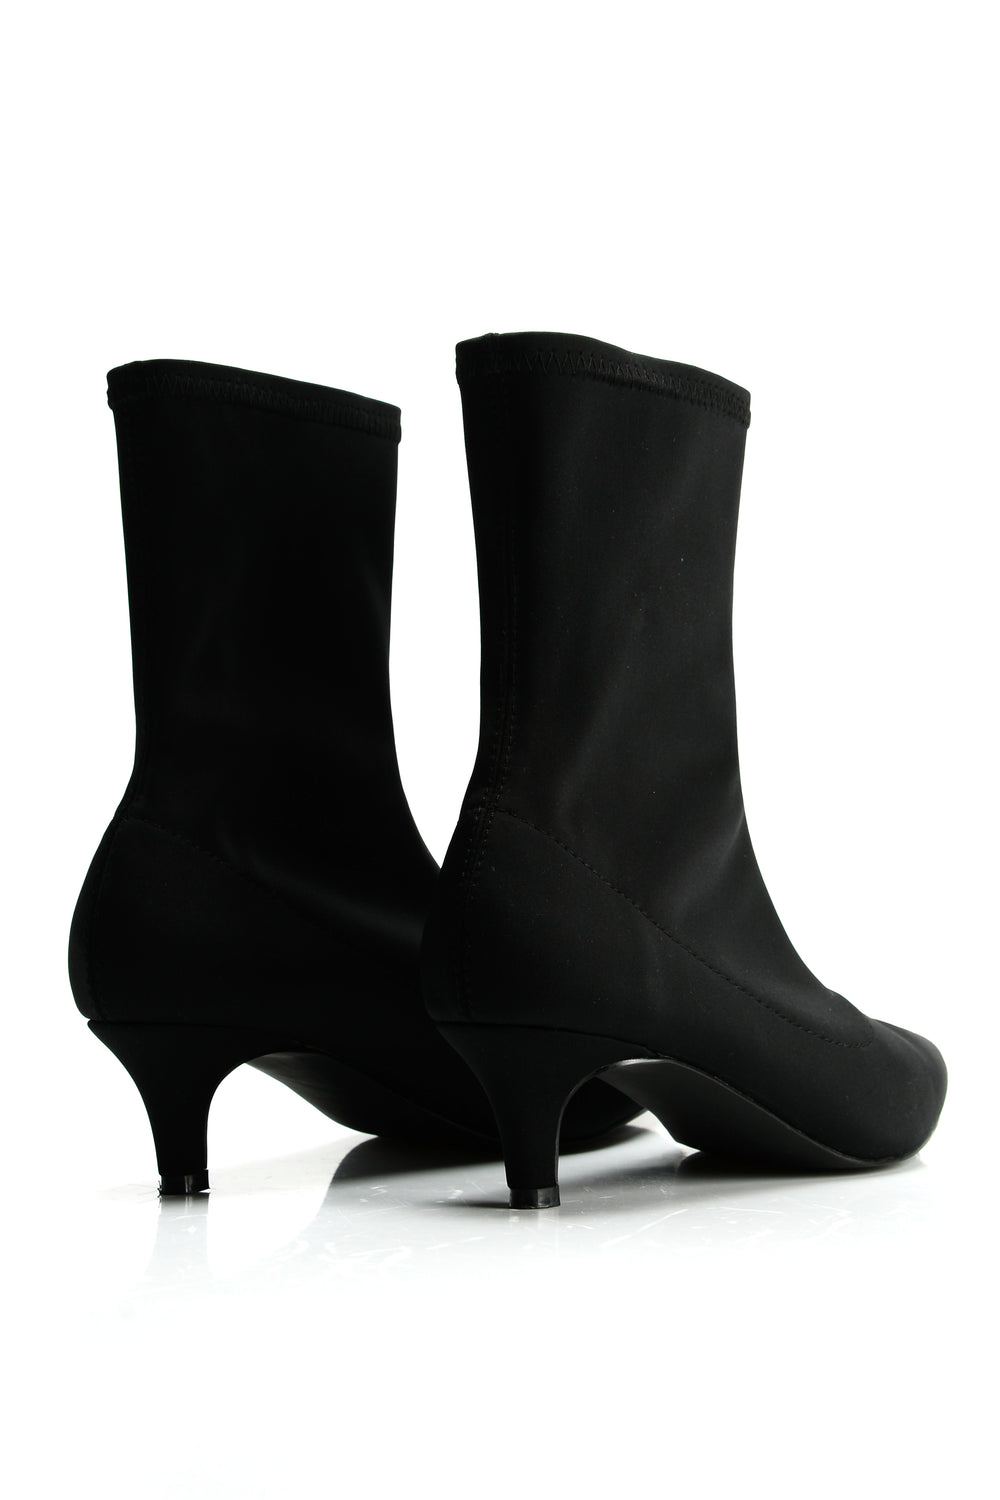 Stay In Your Lane Booties - Black